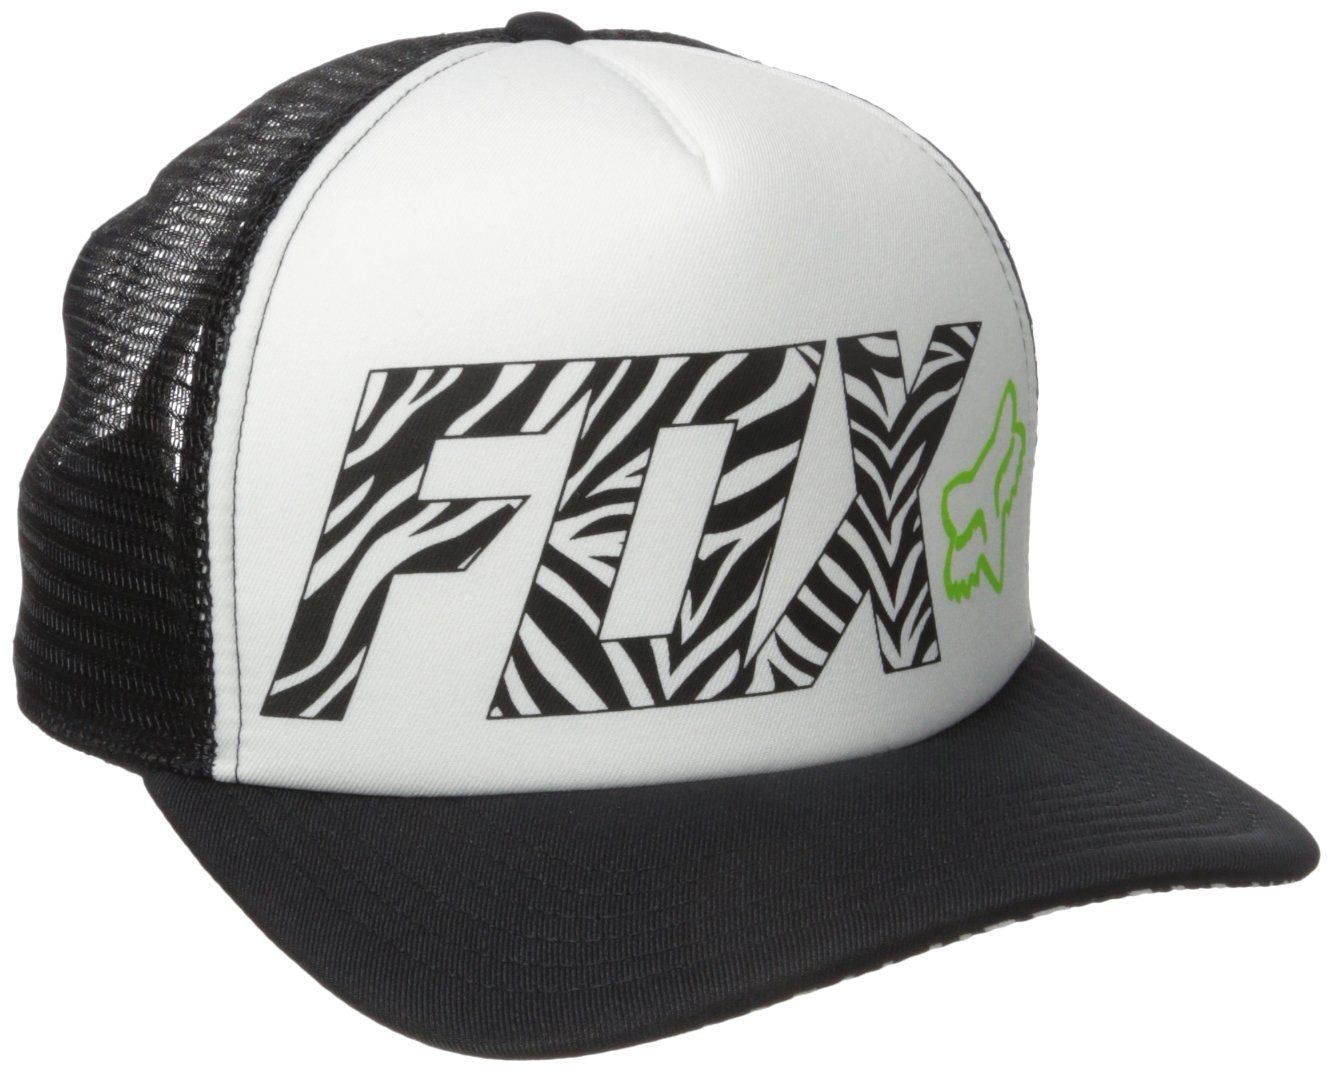 detailing look out for details for low price fox racing mesh hat vietnamese b4726 12024